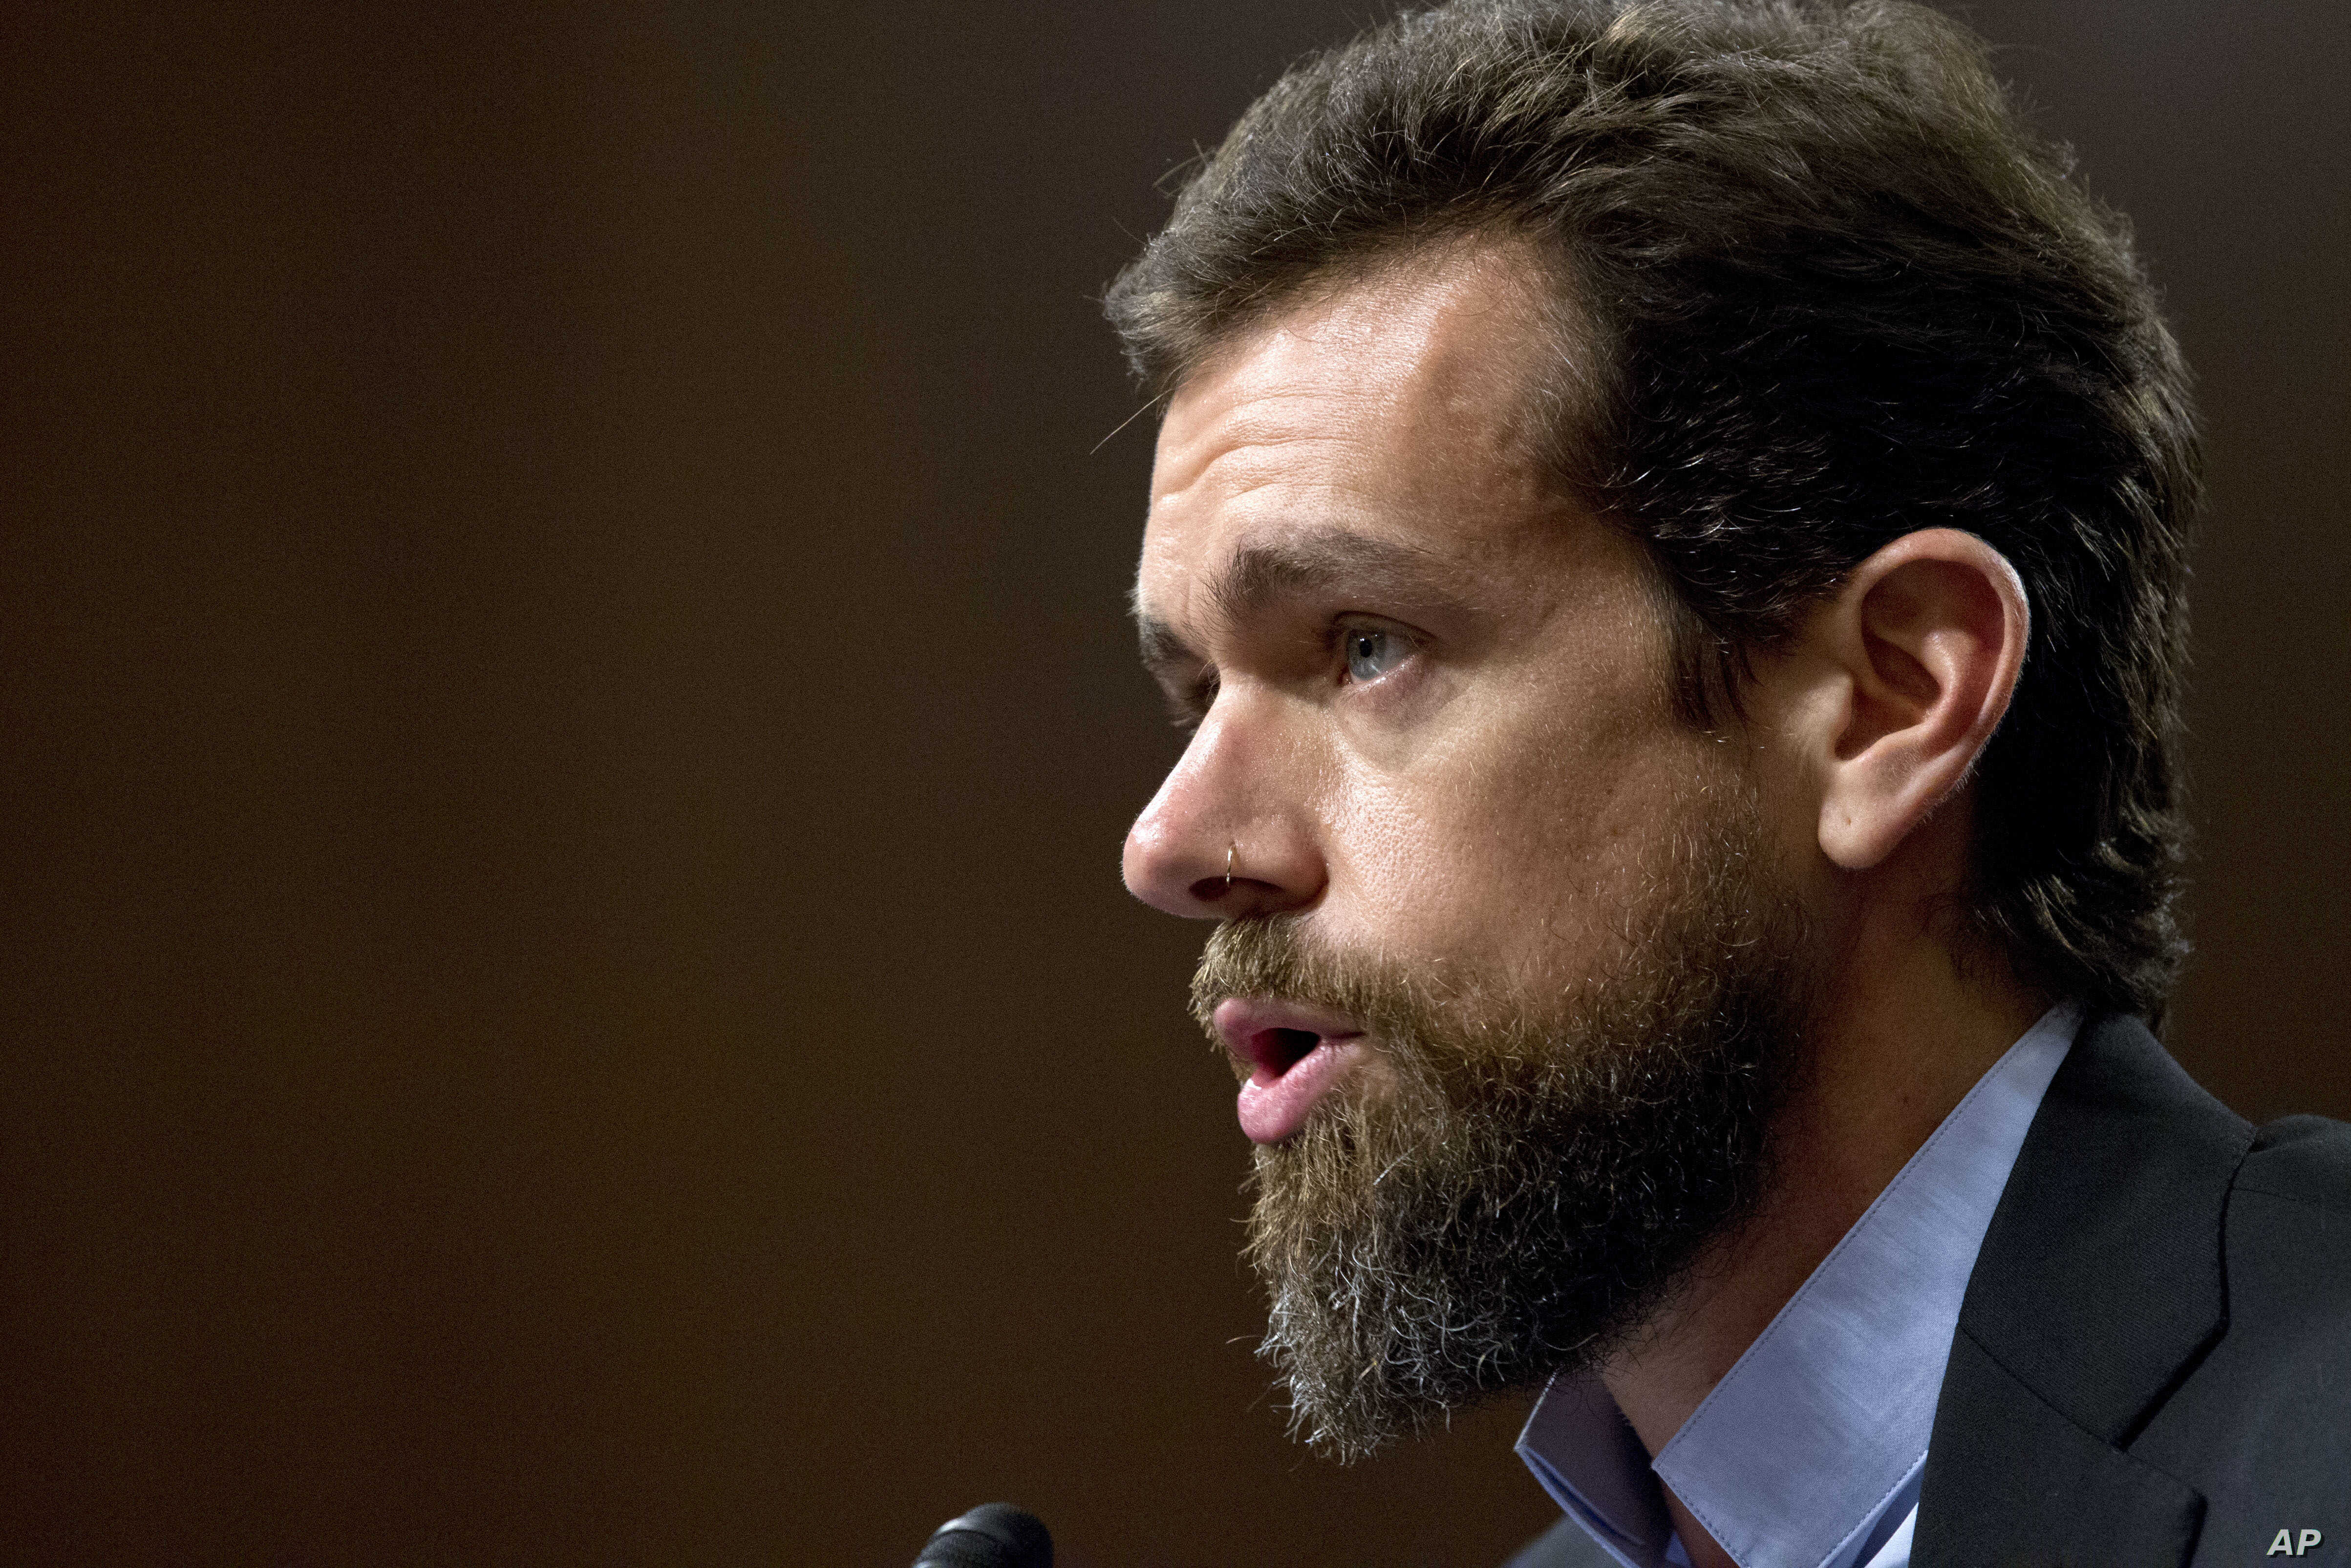 Twitter CEO Jack Dorsey testifies before the Senate Intelligence Committee hearing on 'Foreign Influence Operations and Their Use of Social Media Platforms' on Capitol Hill, Sept. 5, 2018, in Washington.